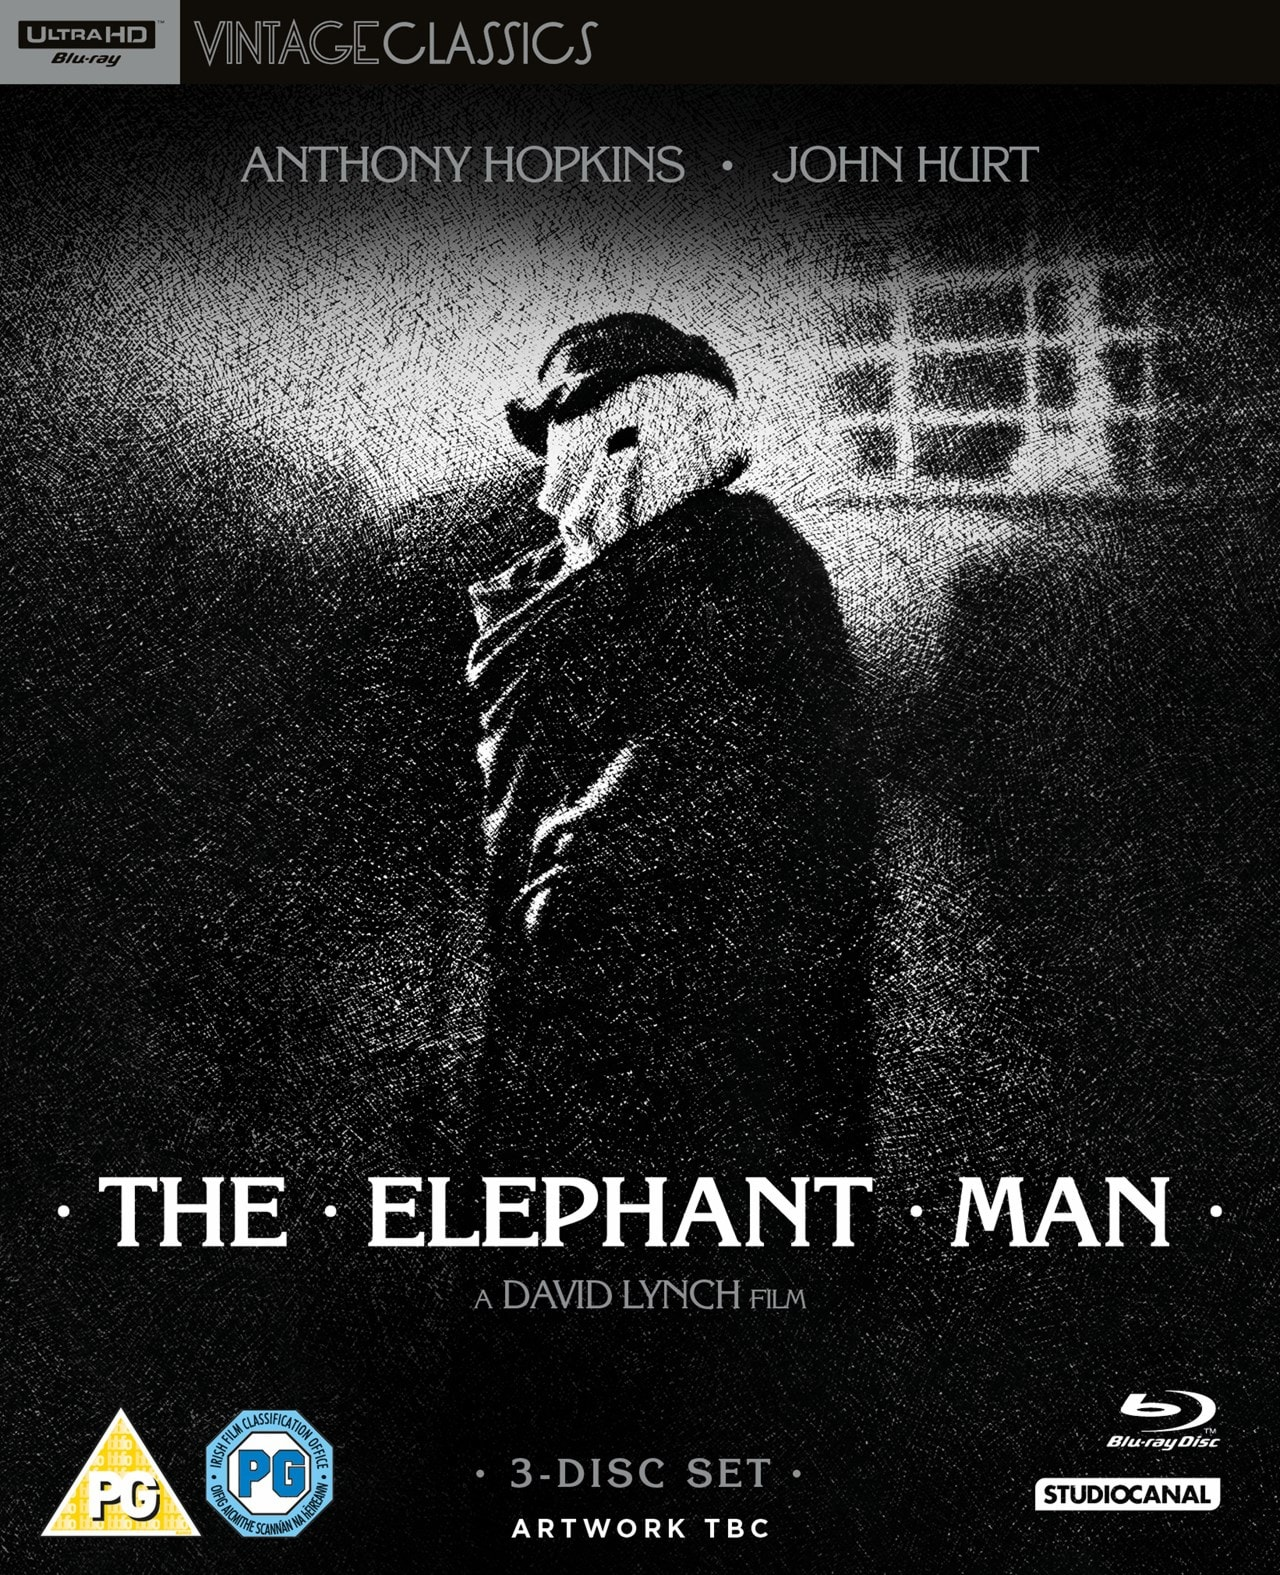 The Elephant Man: 40th Anniversary Edition 4K Ultra HD Collector's Edition - 3